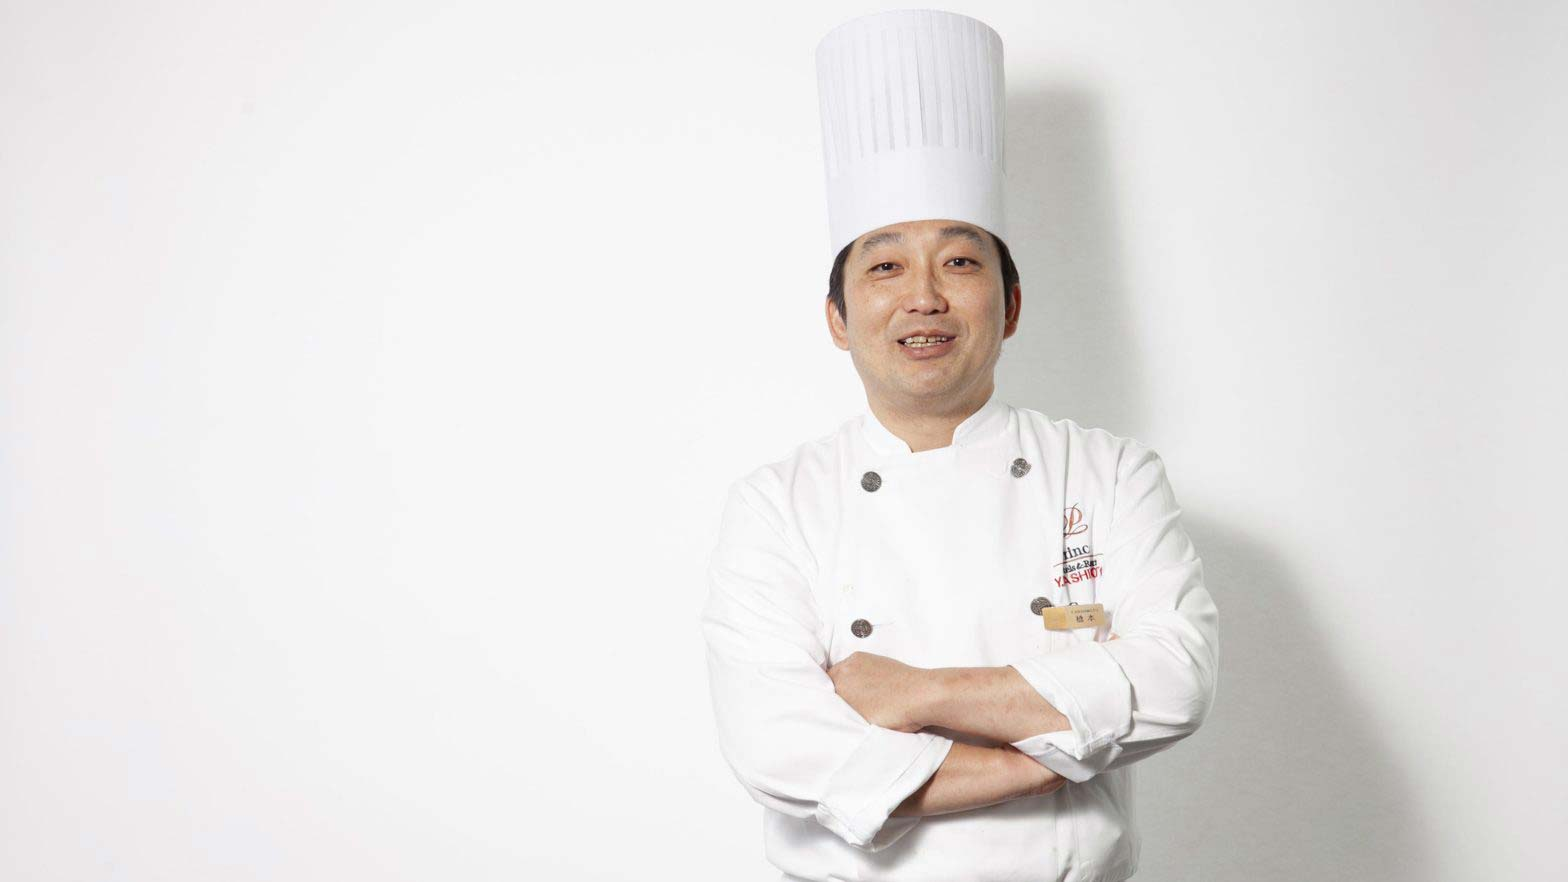 《STAFF RECOMMEND vol.2》 Feelings as a chef and the appeal of Hokkaido ingredients